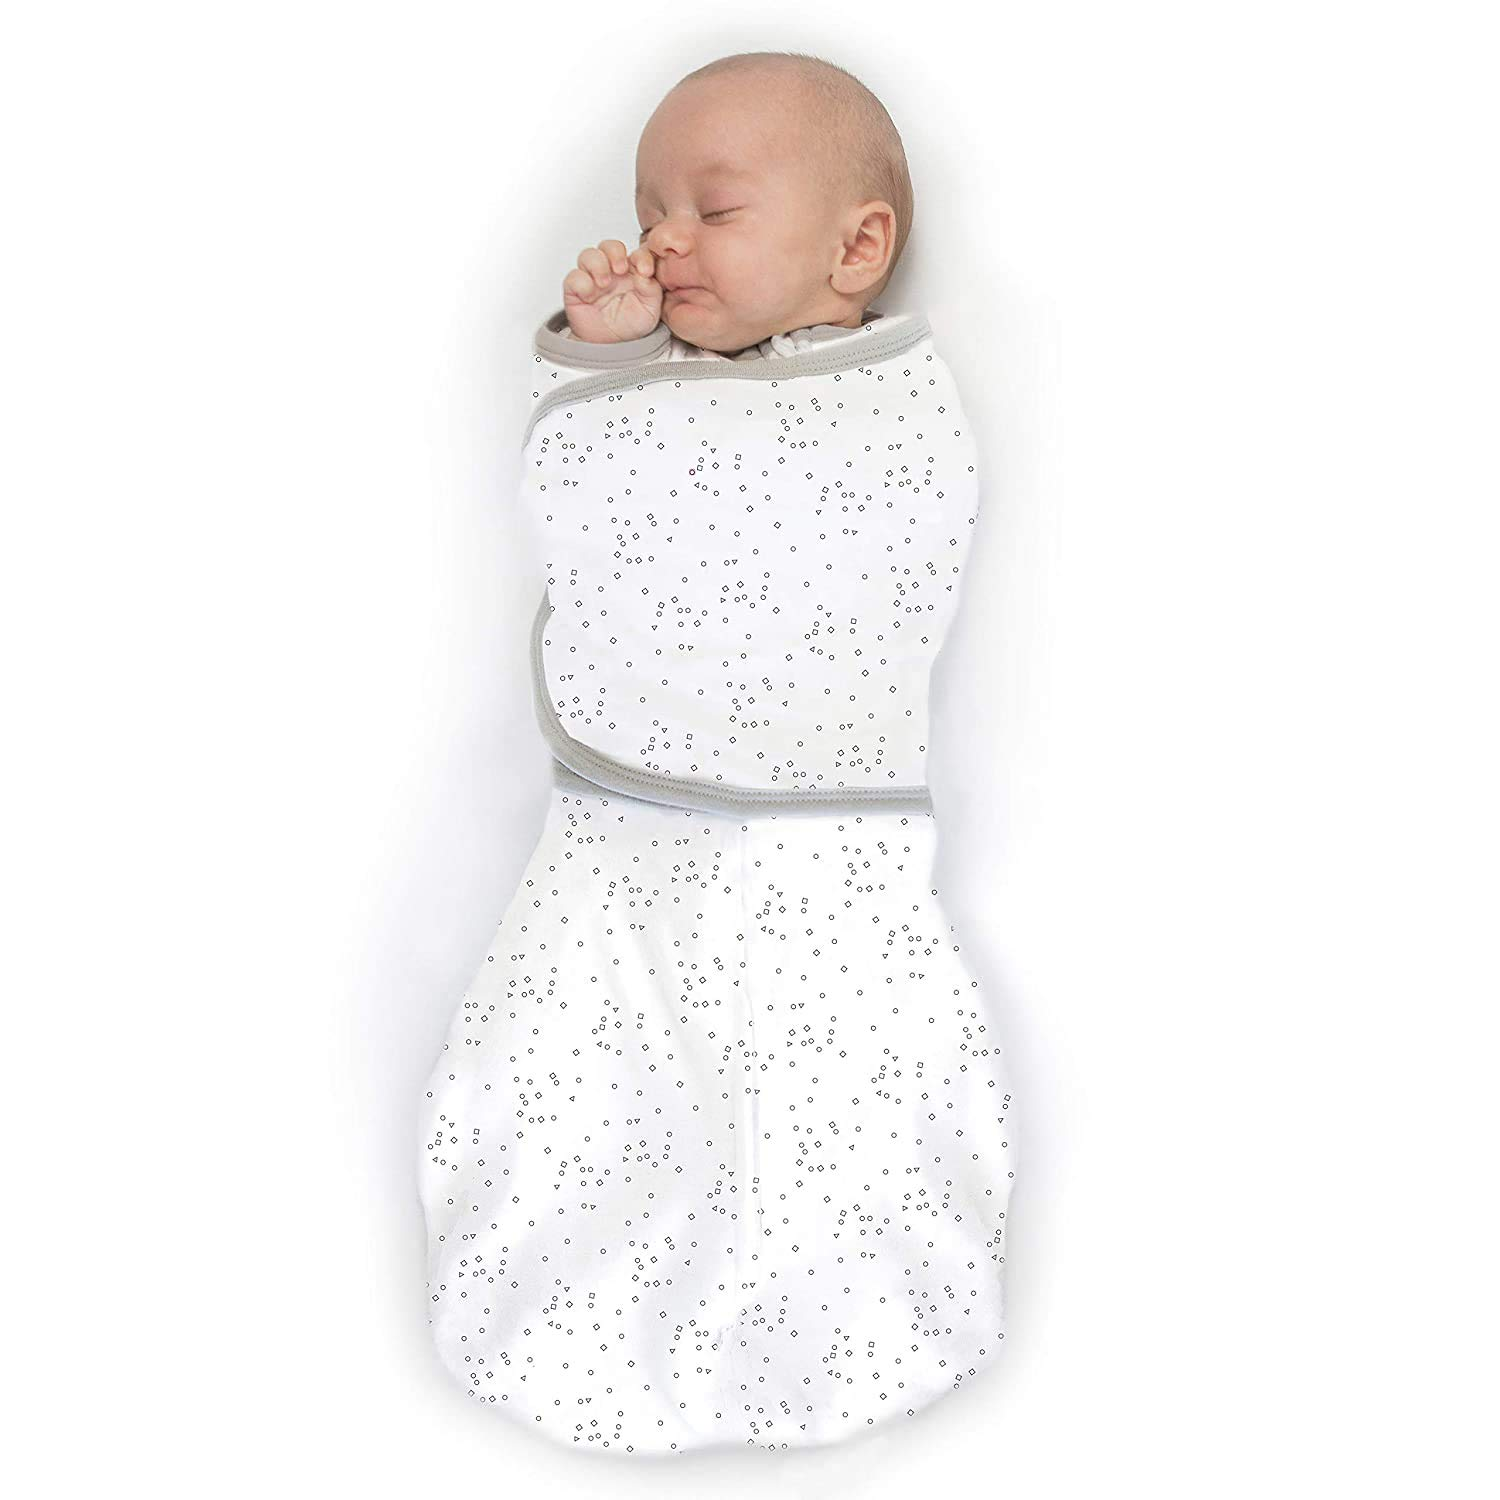 Amazing Baby Omni Swaddle Sack with Wrap & Arms Up Sleeves & Mitten Cuffs, Sterling Confetti, Small 0-3 Months